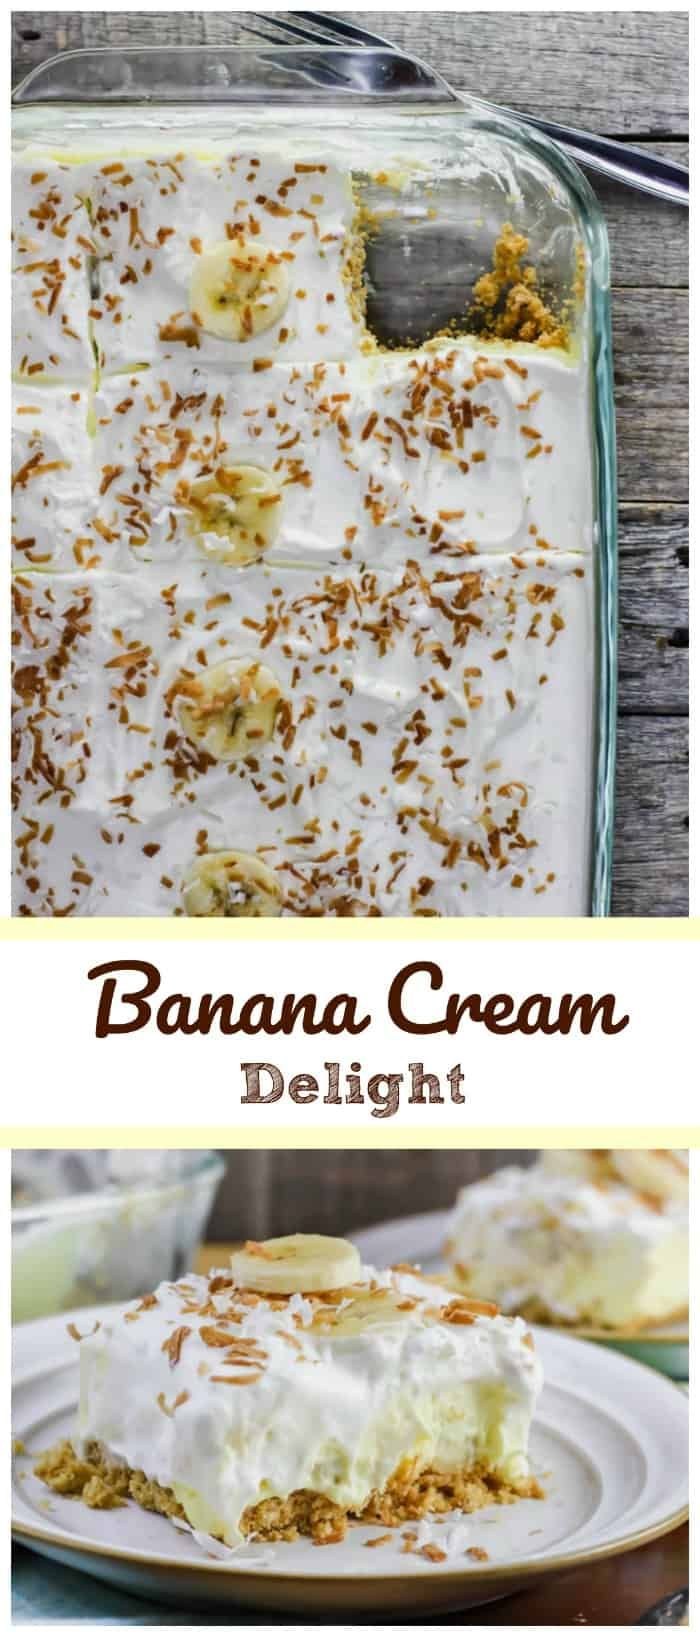 Luscious Banana Cream Delight - Creamy vanilla cheesecake pudding dessert with a layer of banana slices throughout on a buttery graham cracker crust and some fluffy whipped cream on top sounds pretty damn good! It's a classic!! It's delectable!! Banana Cream Pie in a pan!! via @https://www.pinterest.com/BaknChocolaTess/